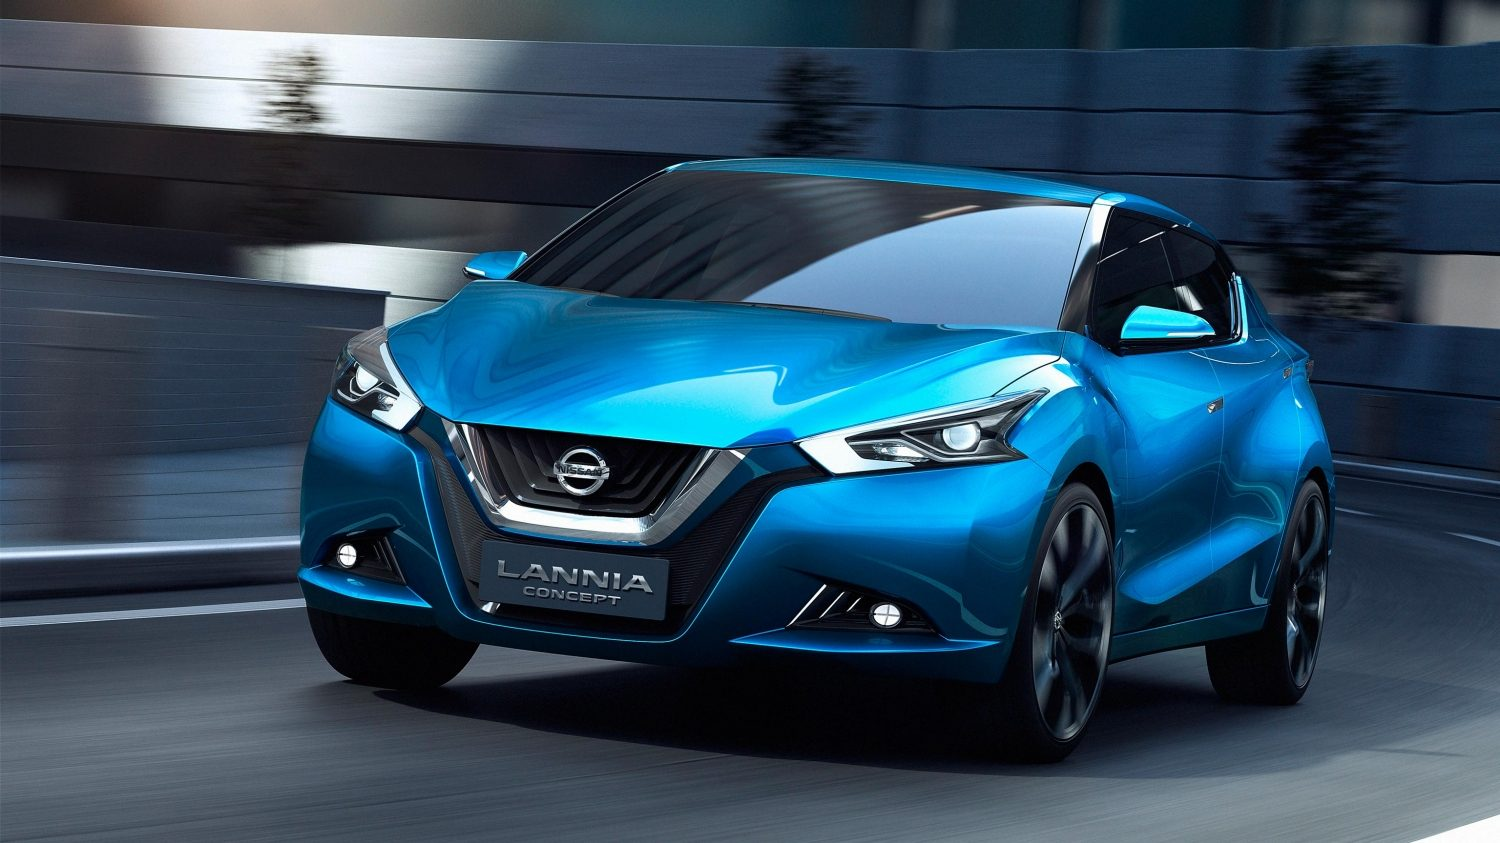 Nissan Lannia Concept. Gallery front action.